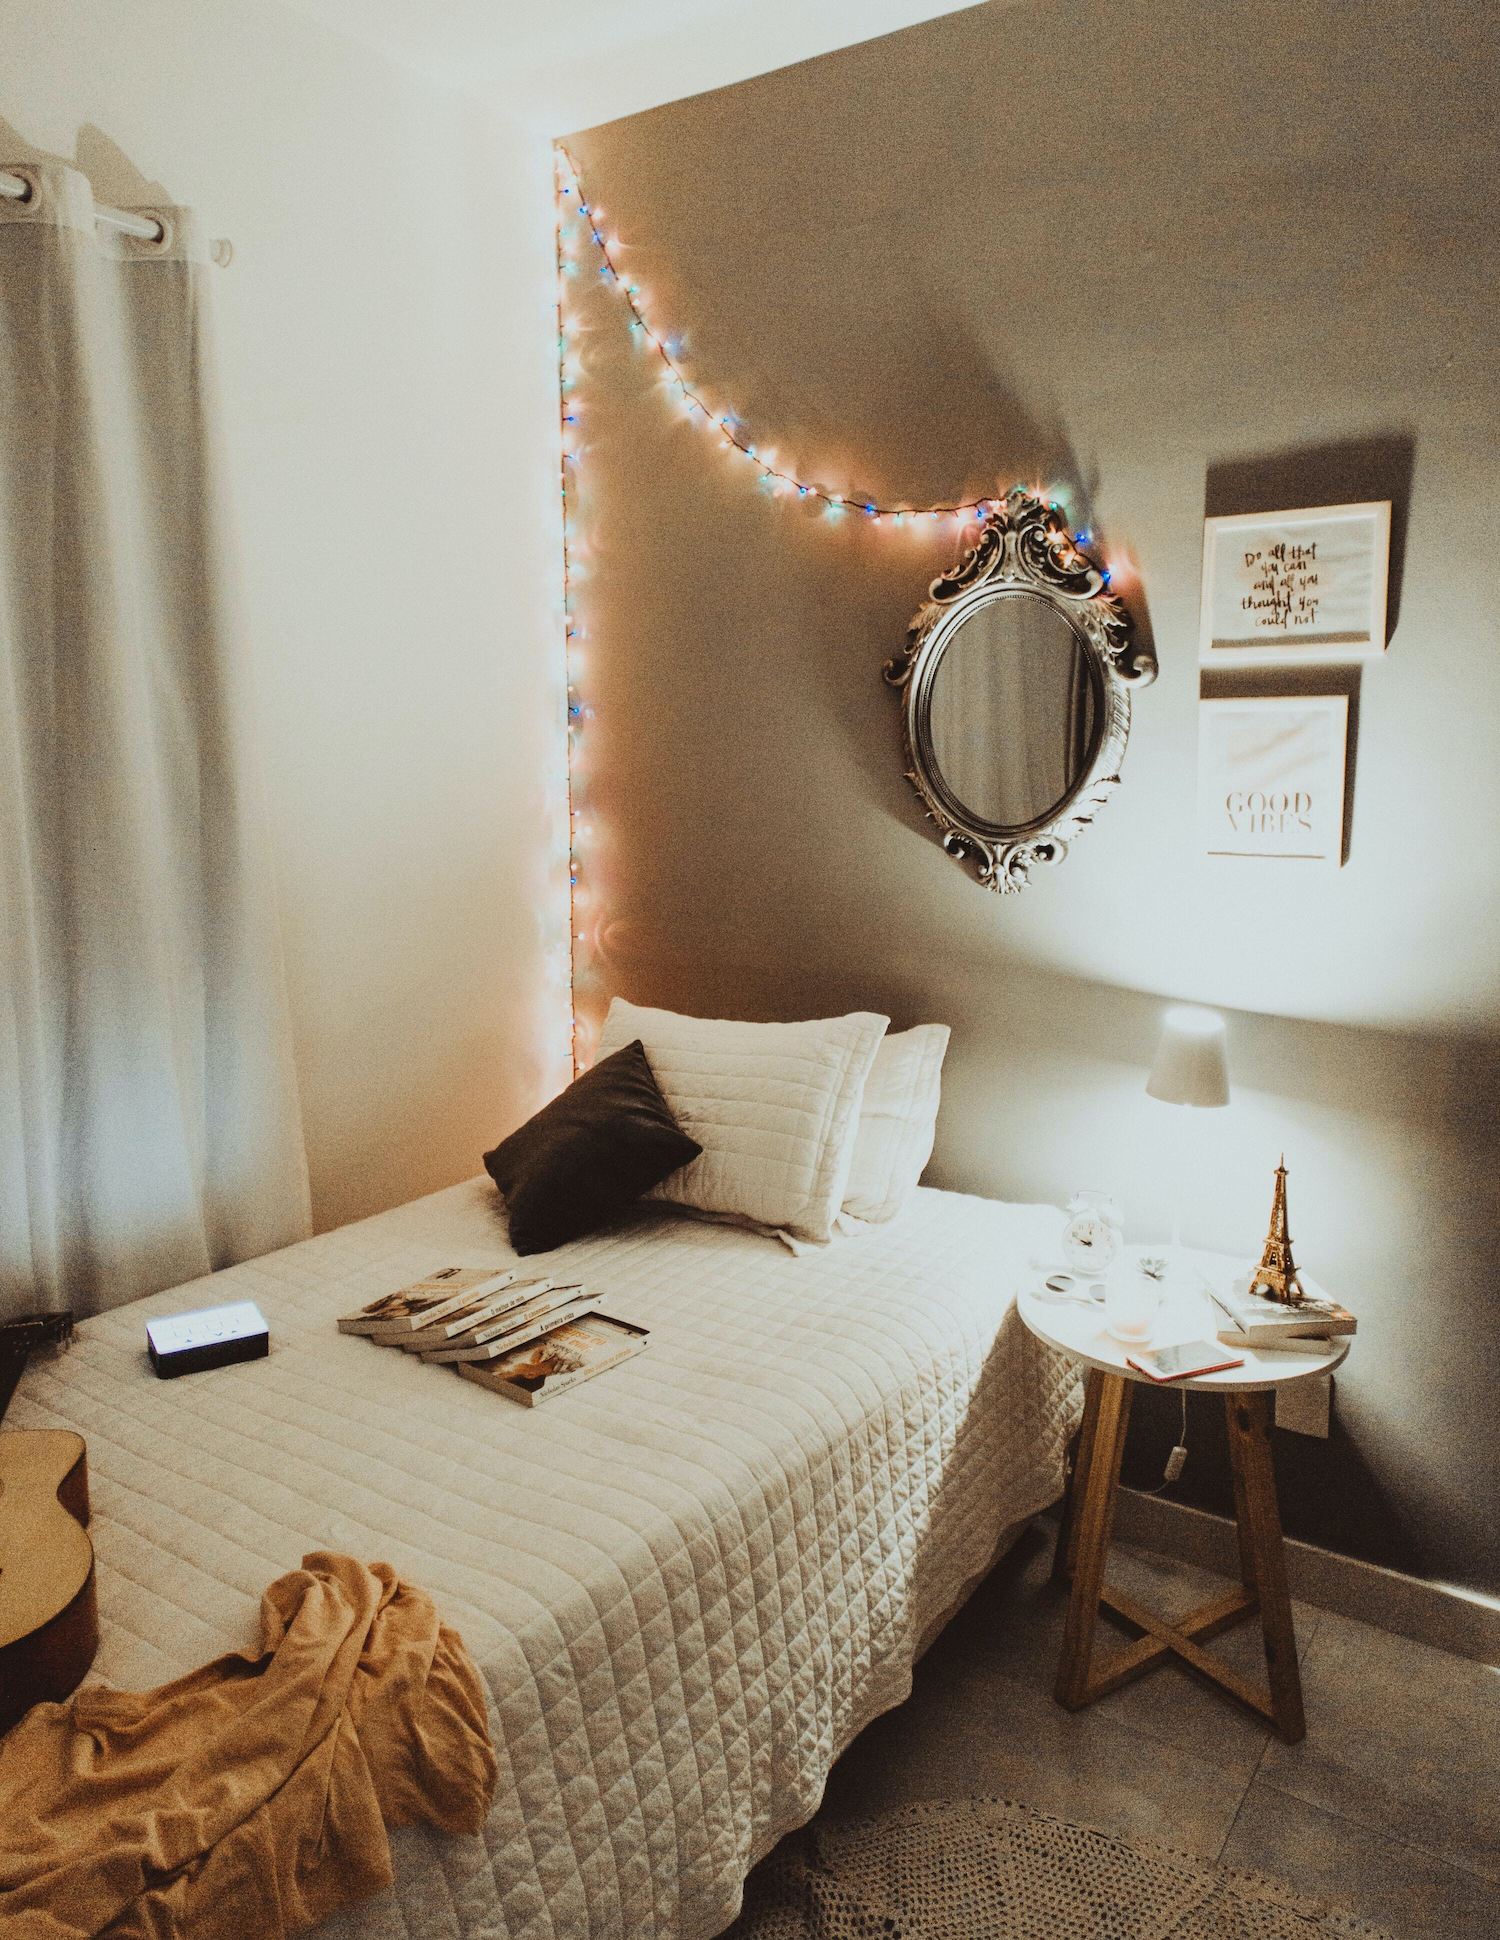 Dorm room with mirror and rainbow string-lights.